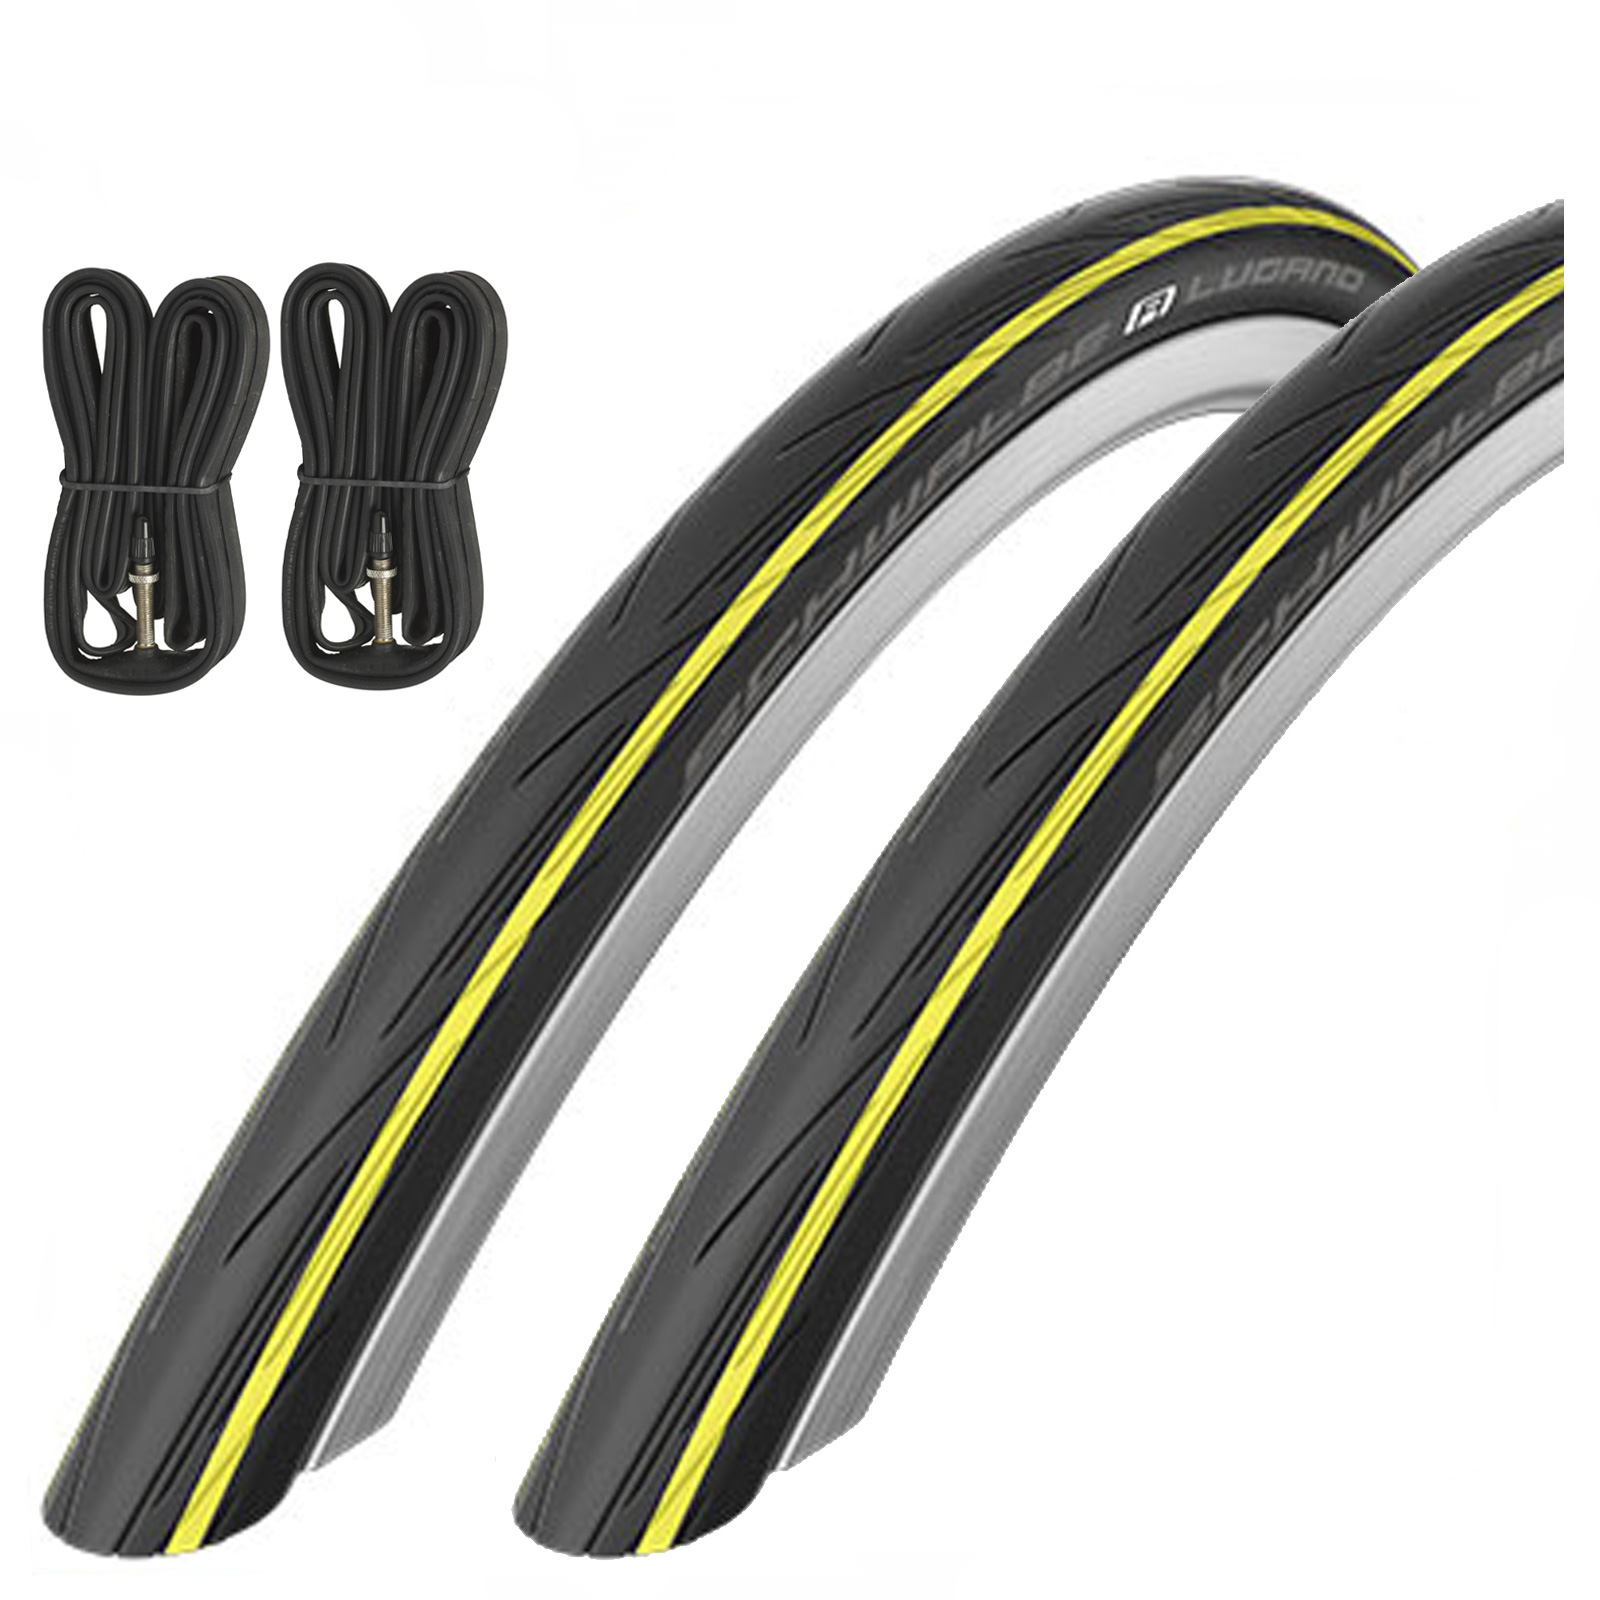 Schwalbe-Lugano-Active-Line-K-Guard-Road-Bike-Tires-amp-Presta-Tubes-700-X-23C